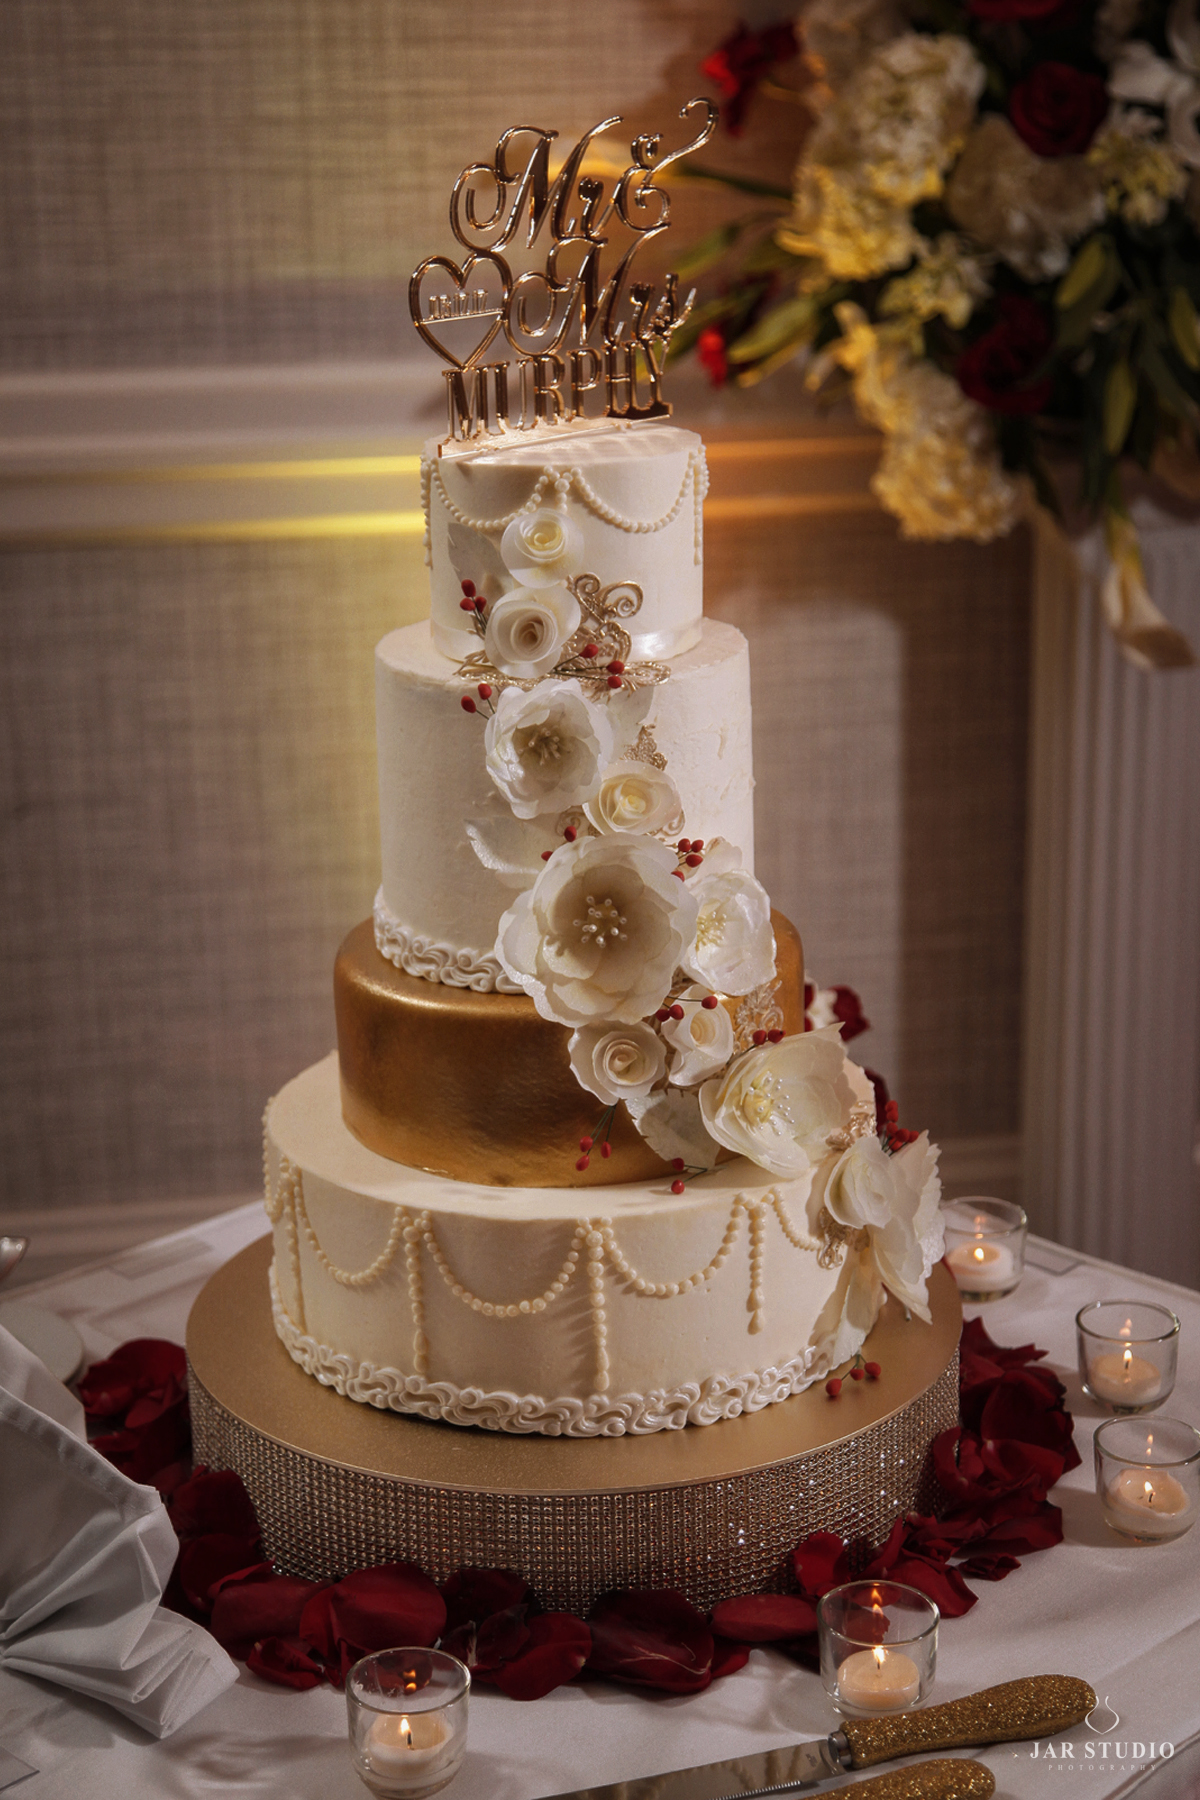 31-orlando-indian-weddings-elegant-cake-jarstudio-photographer.JPG